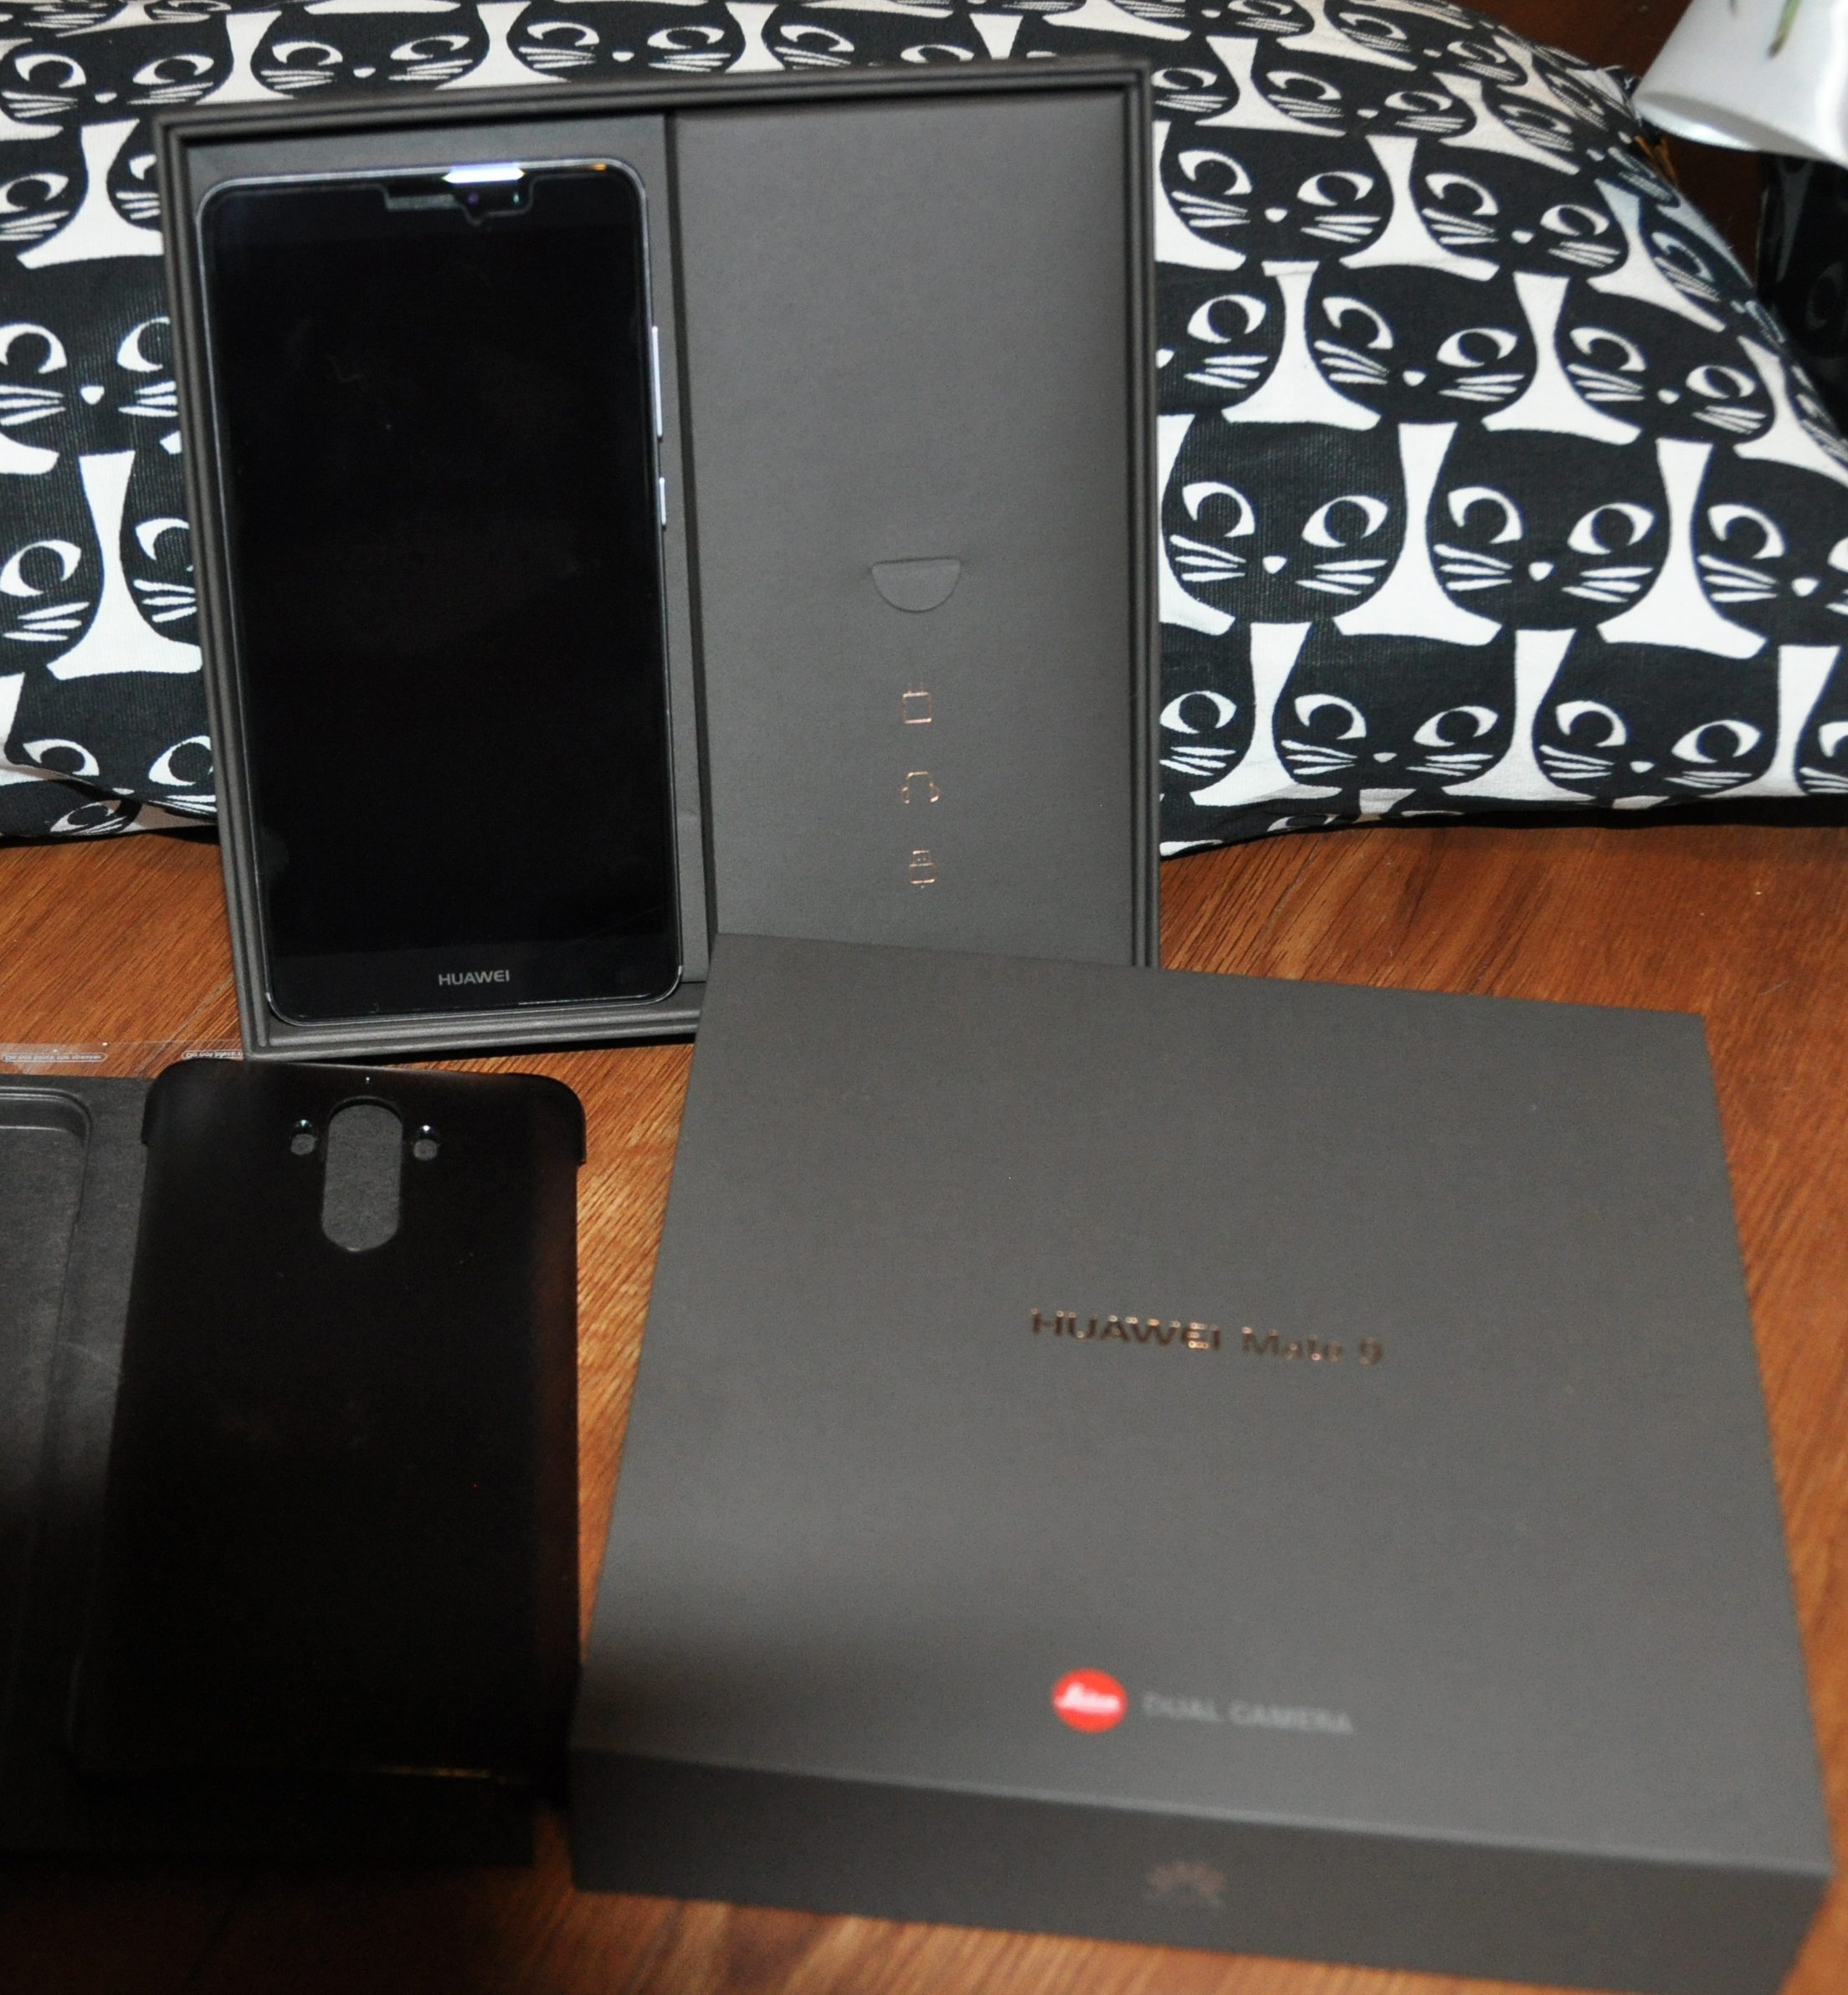 Boxed phone with included case